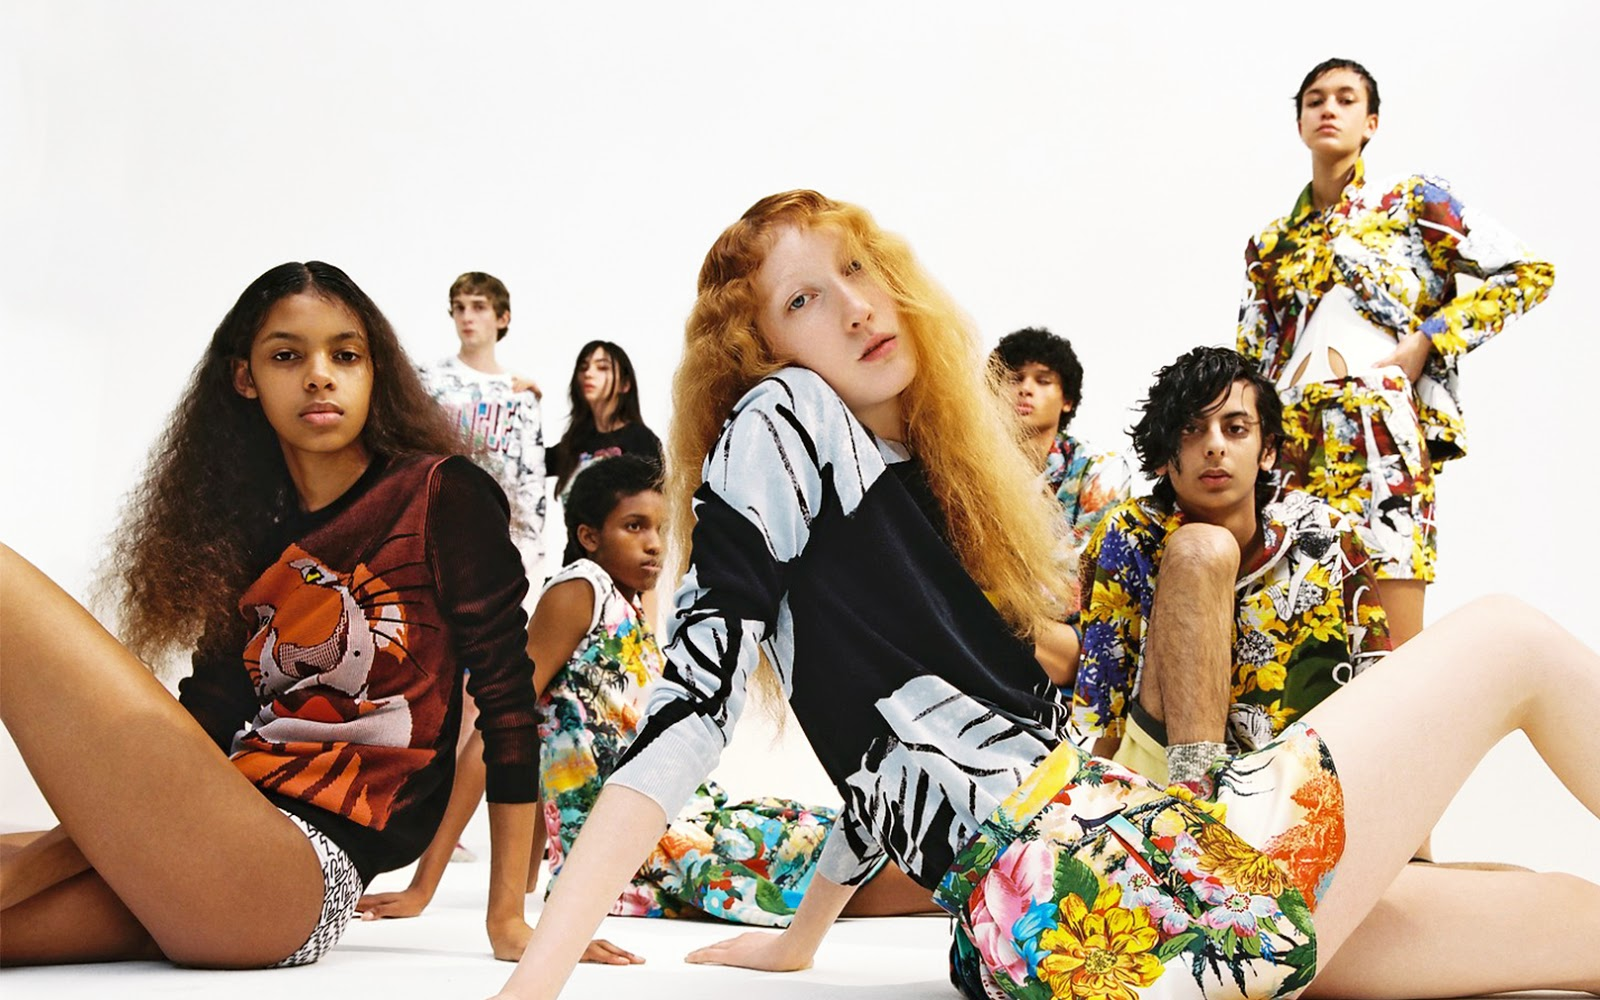 Kenzo presents Disney's Jungle Book-themed collection